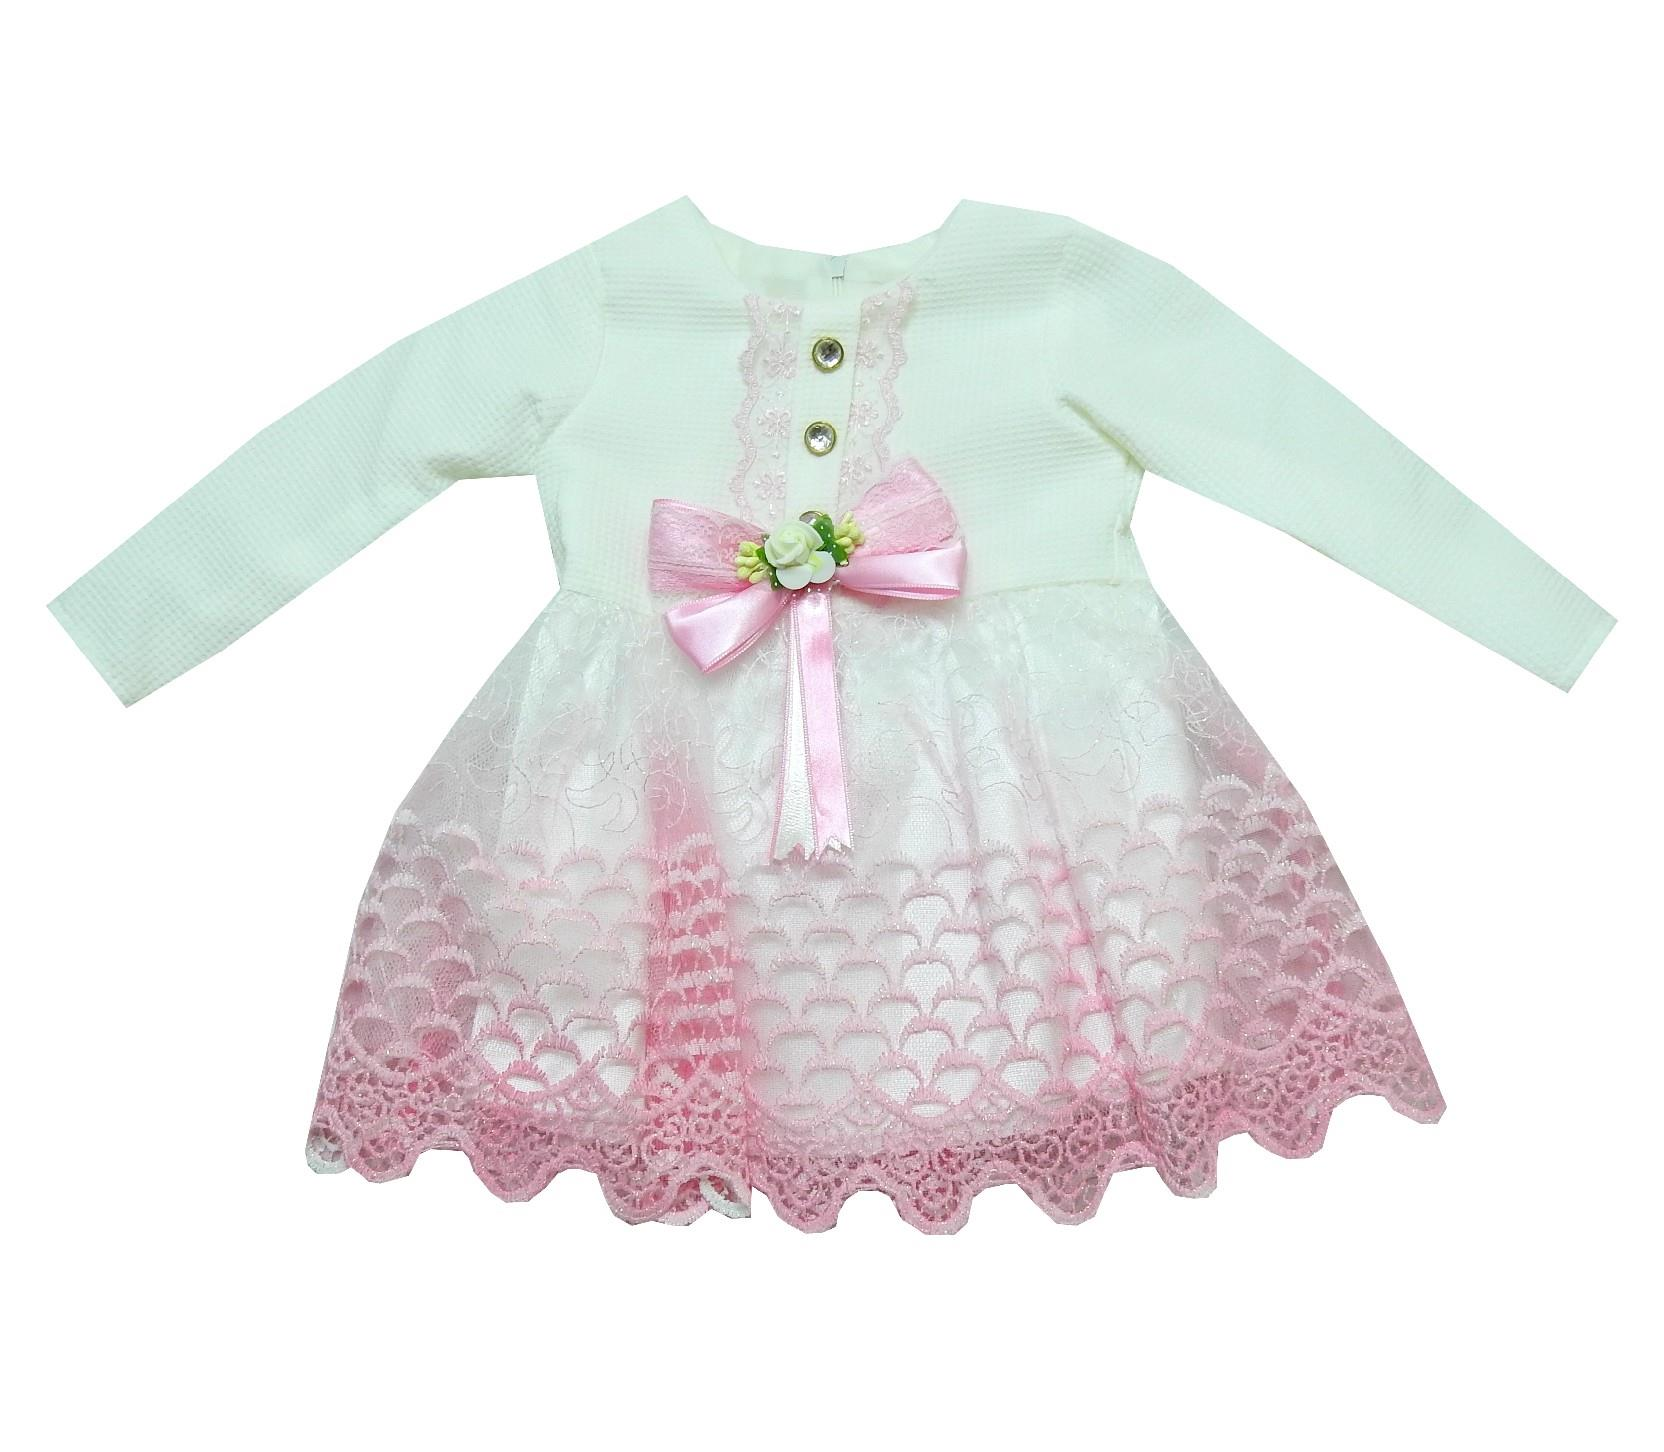 WHOLESALE BOW APPLIQUE LACE EMBROIDERY DESIGN DRESS FOR GIRL (1-2-3 AGE)